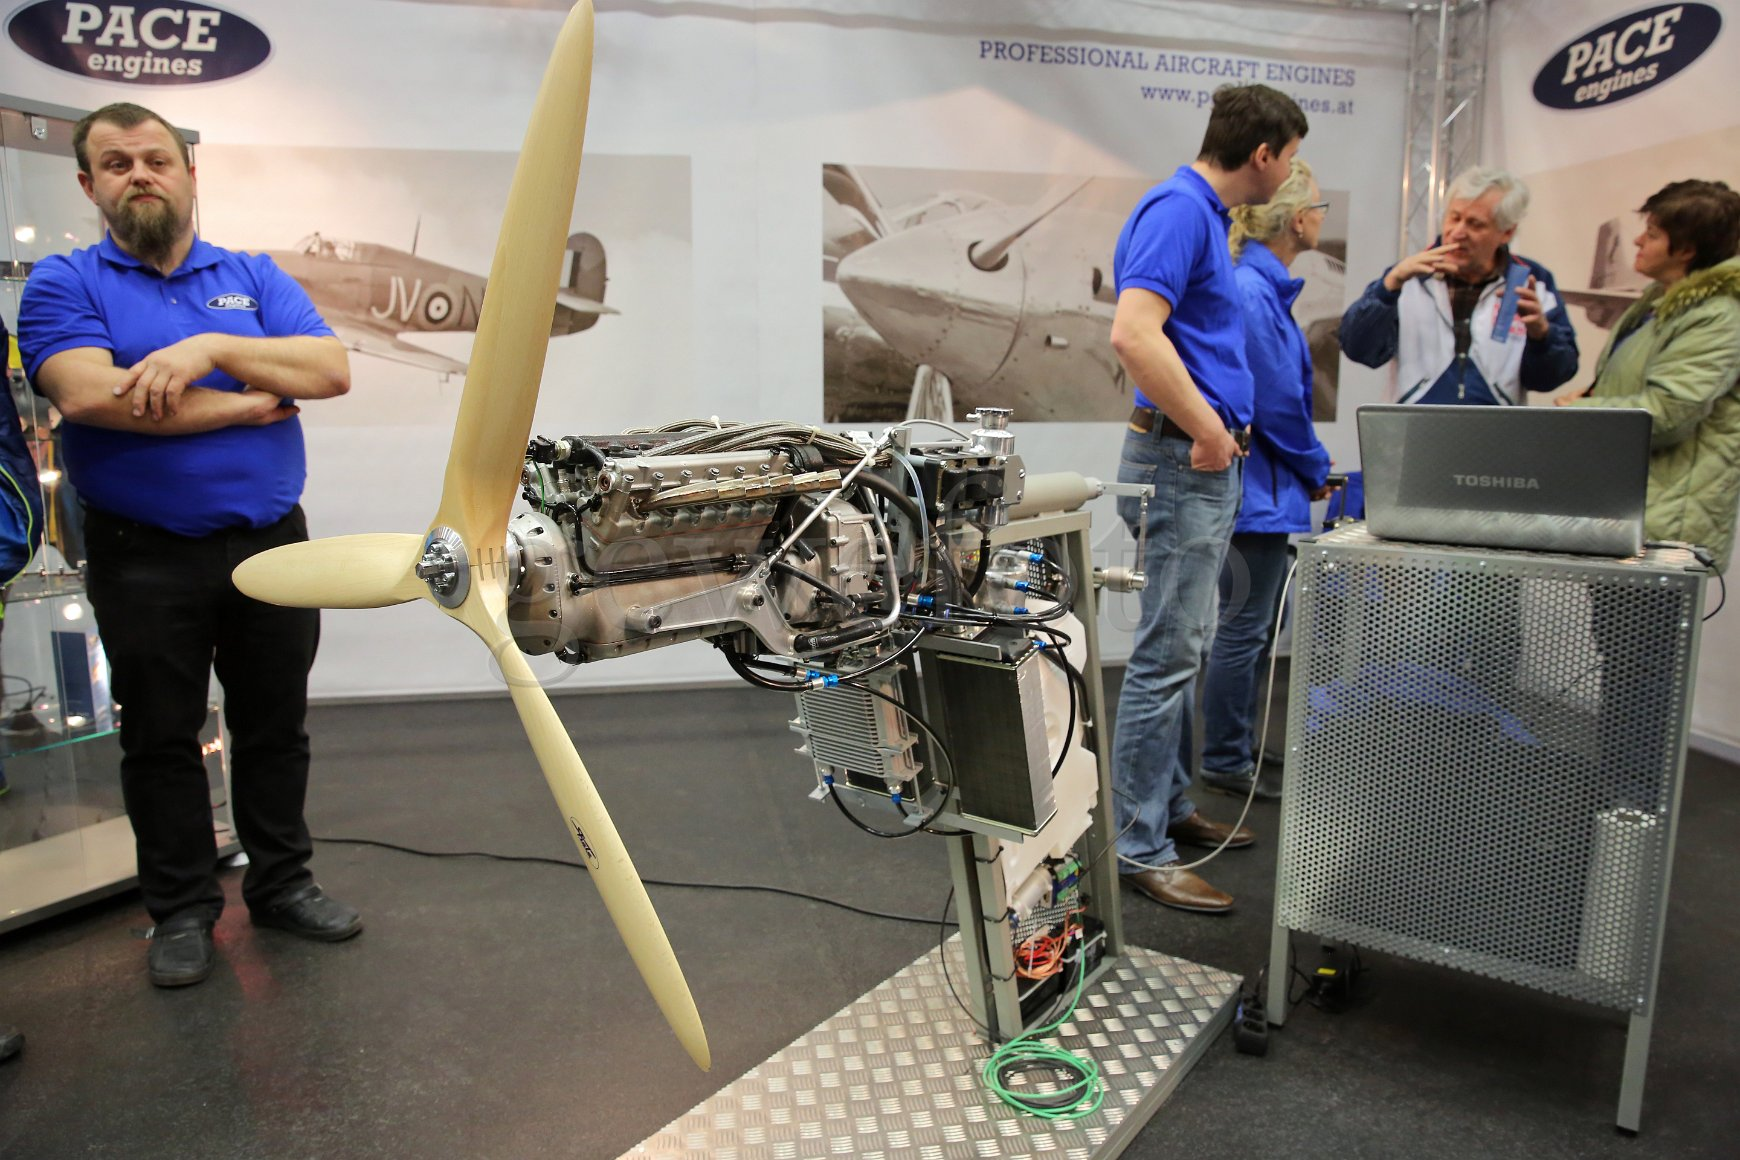 Modellbaumesse Wels 2015